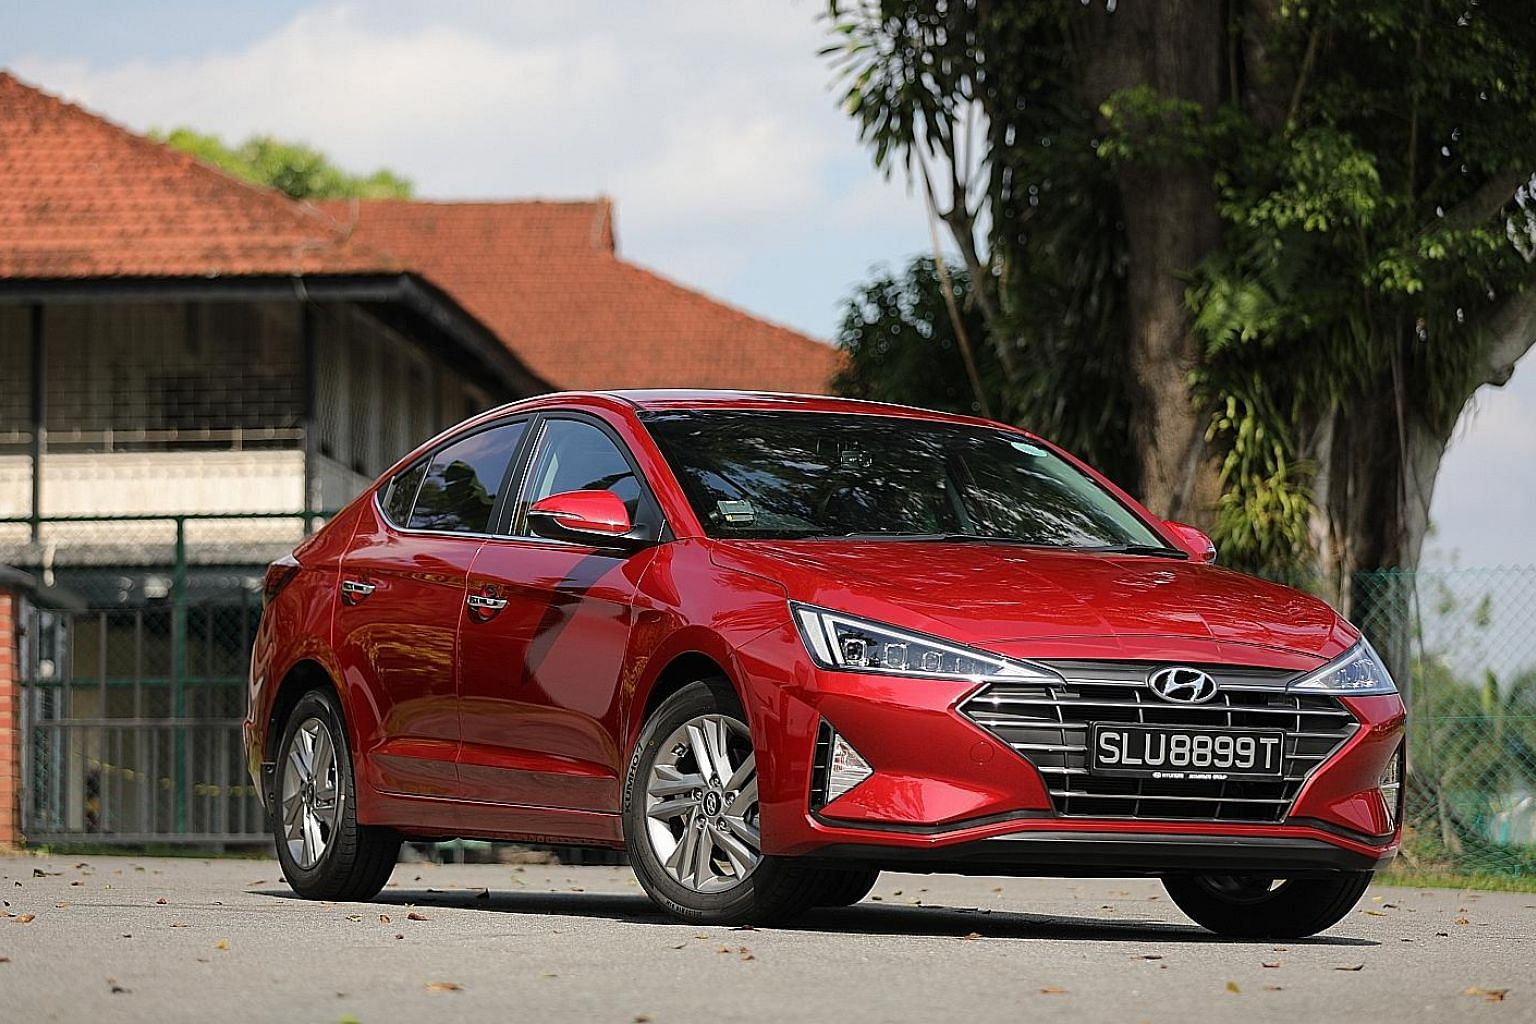 Besides an infotainment touchscreen that has Apple and Android interfaces, Hyundai's Avante sports a sharp look, with features such as slim all-LED headlights.